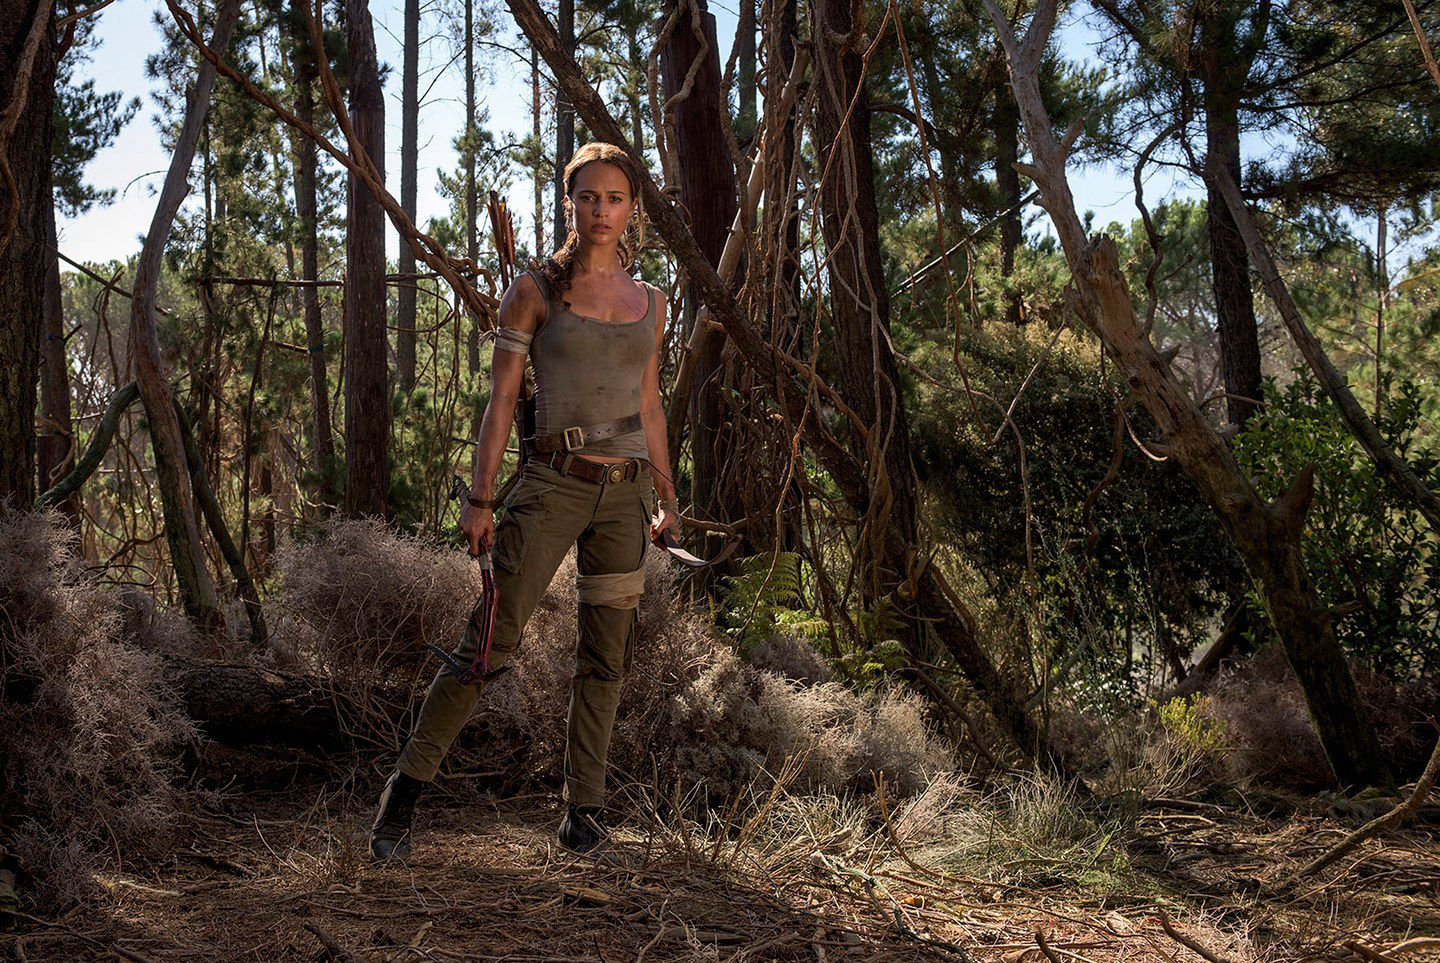 Tomb Raider 2018 - Alicia Vikander is Lara Croft - film scene